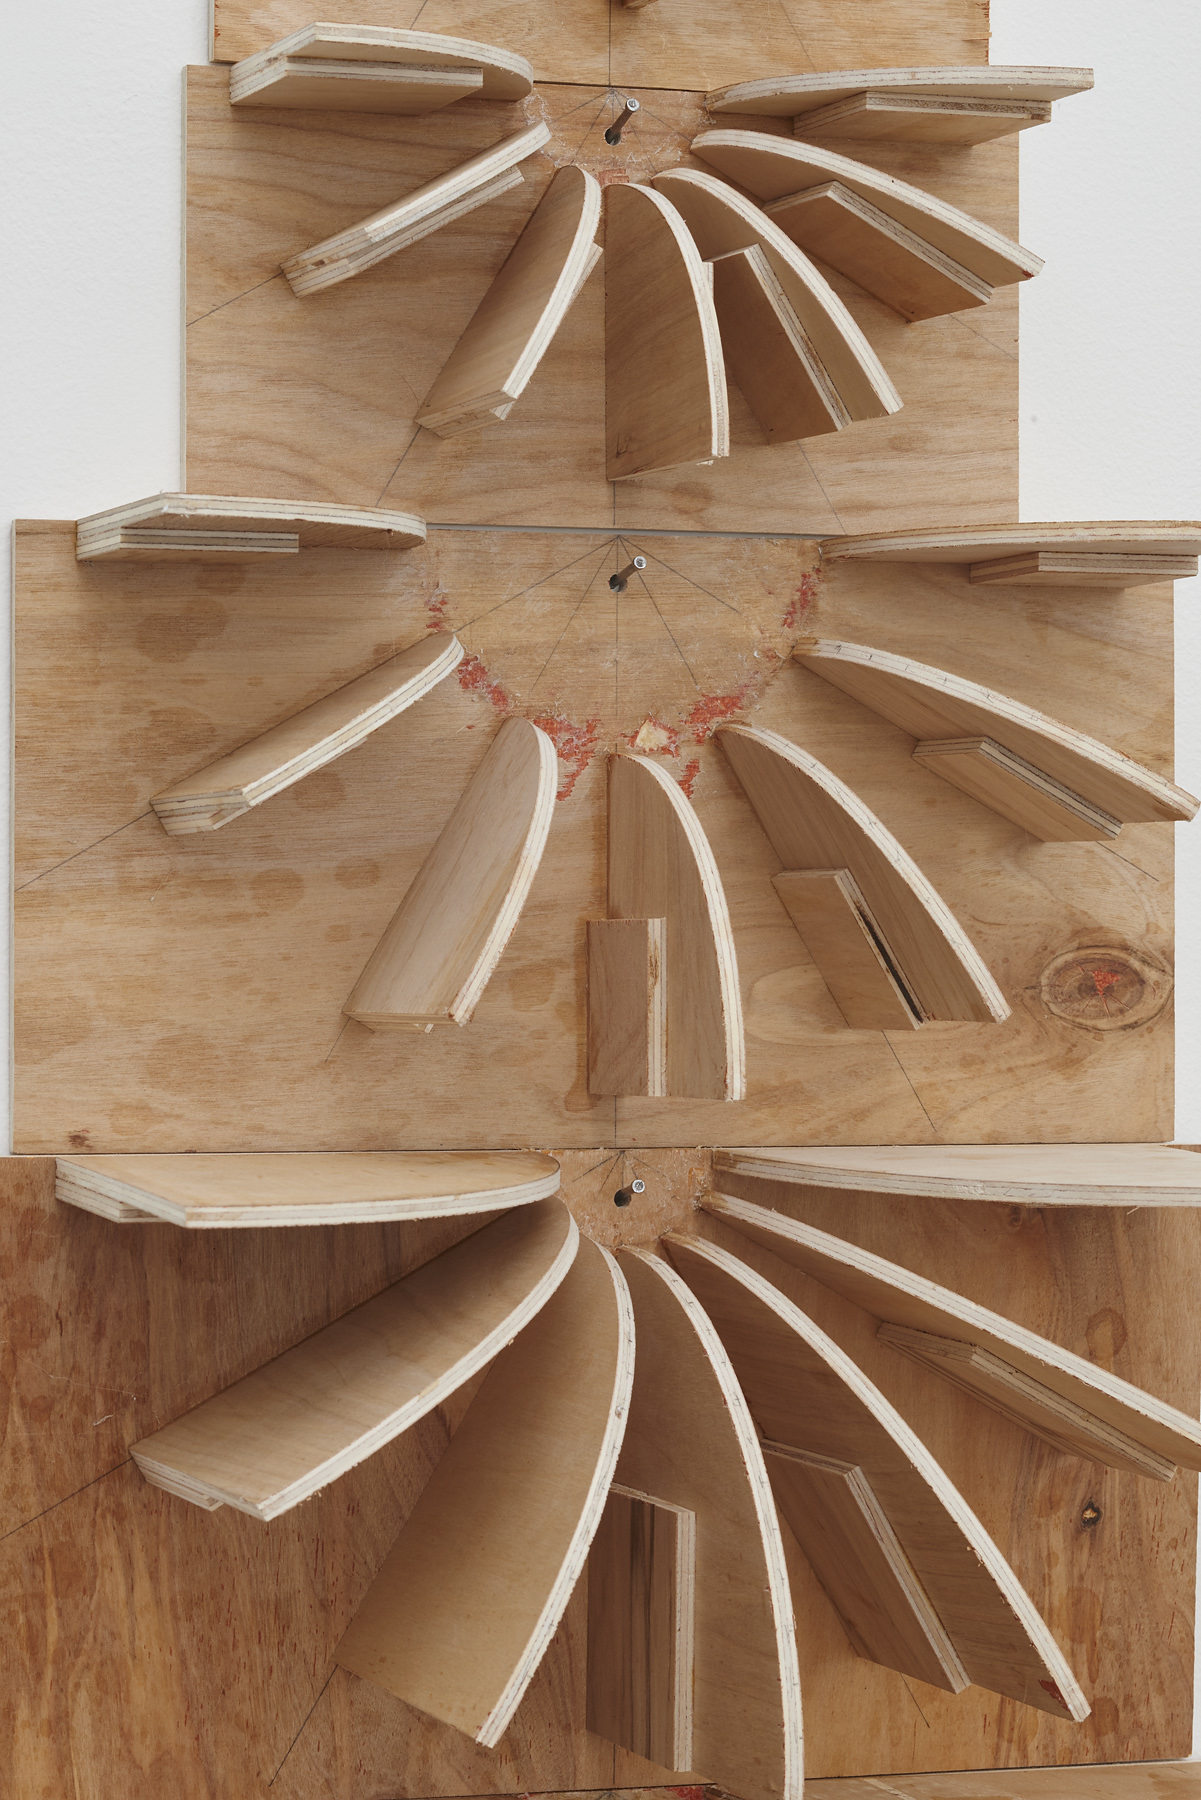 69.Hoeber_Negative Space Thought, 2015_Plywood, glue, shellac, popsicle sticks and nails